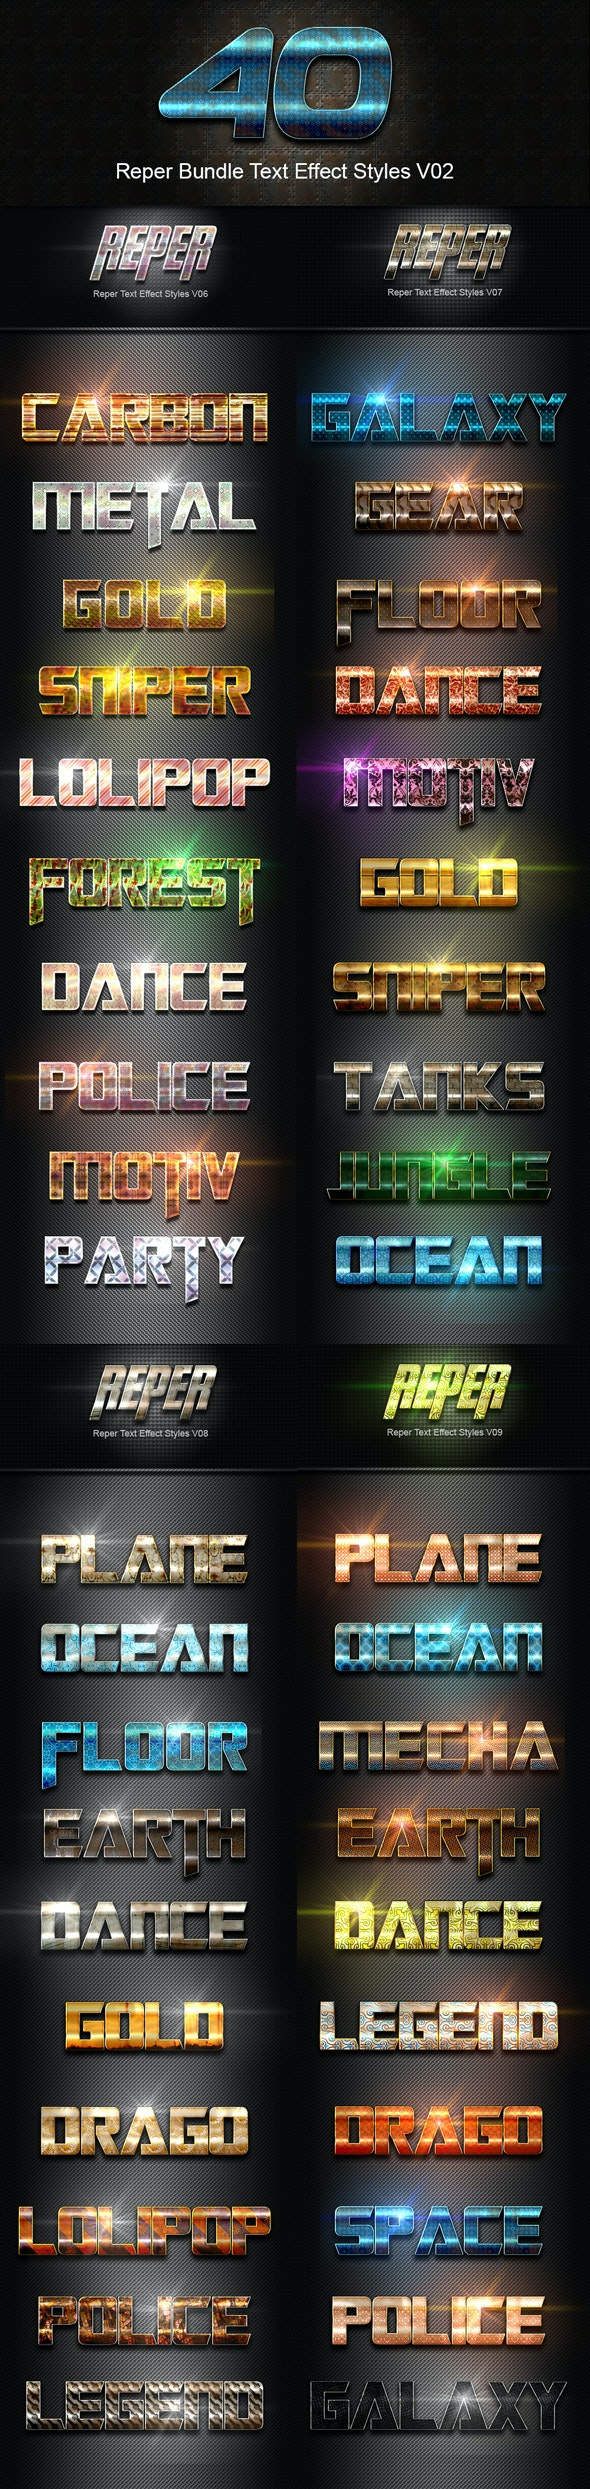 40 Reper Bundle Text Effect Styles V02 - Text Effects Styles